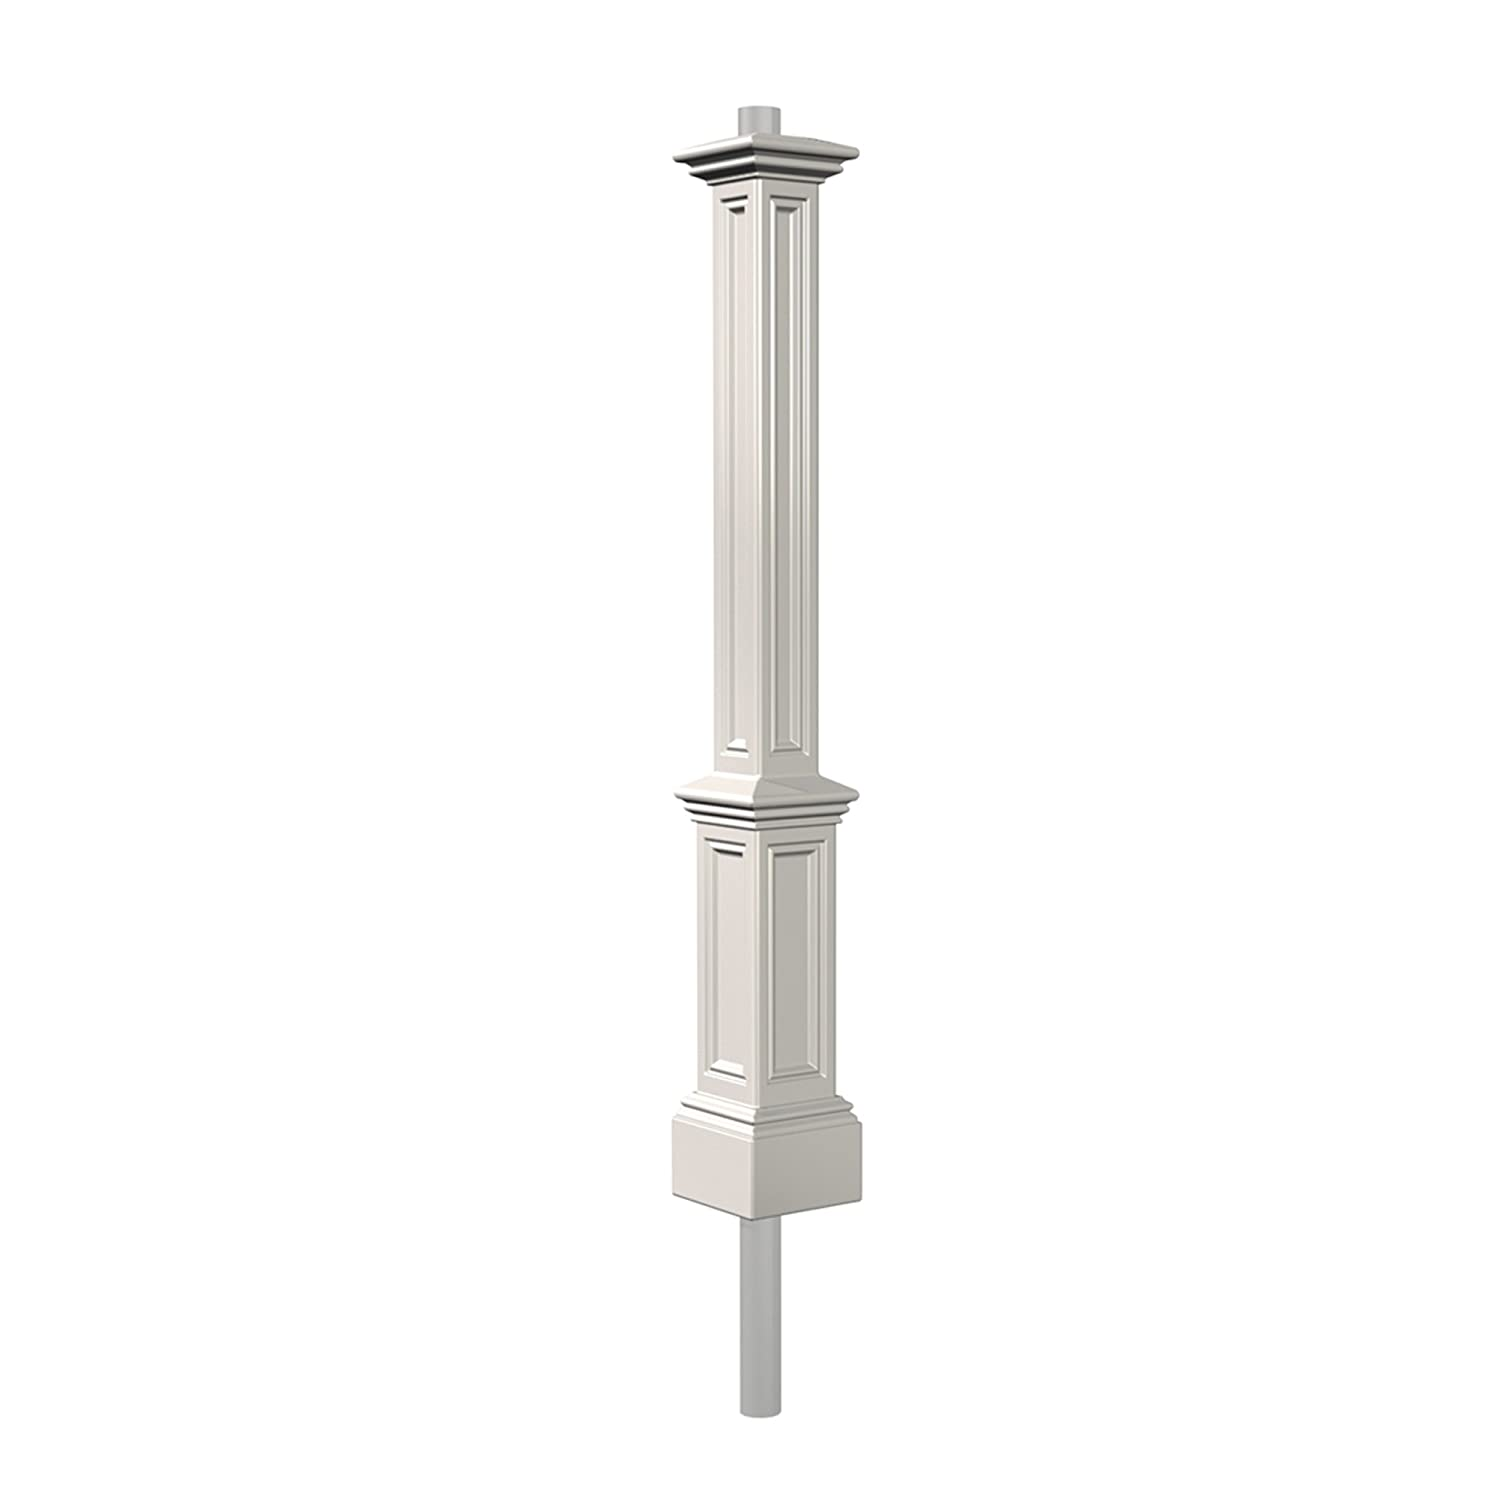 Wood outdoor lamp post - Amazoncom Mayne 5835wh Signature Lamp Post With 89inch